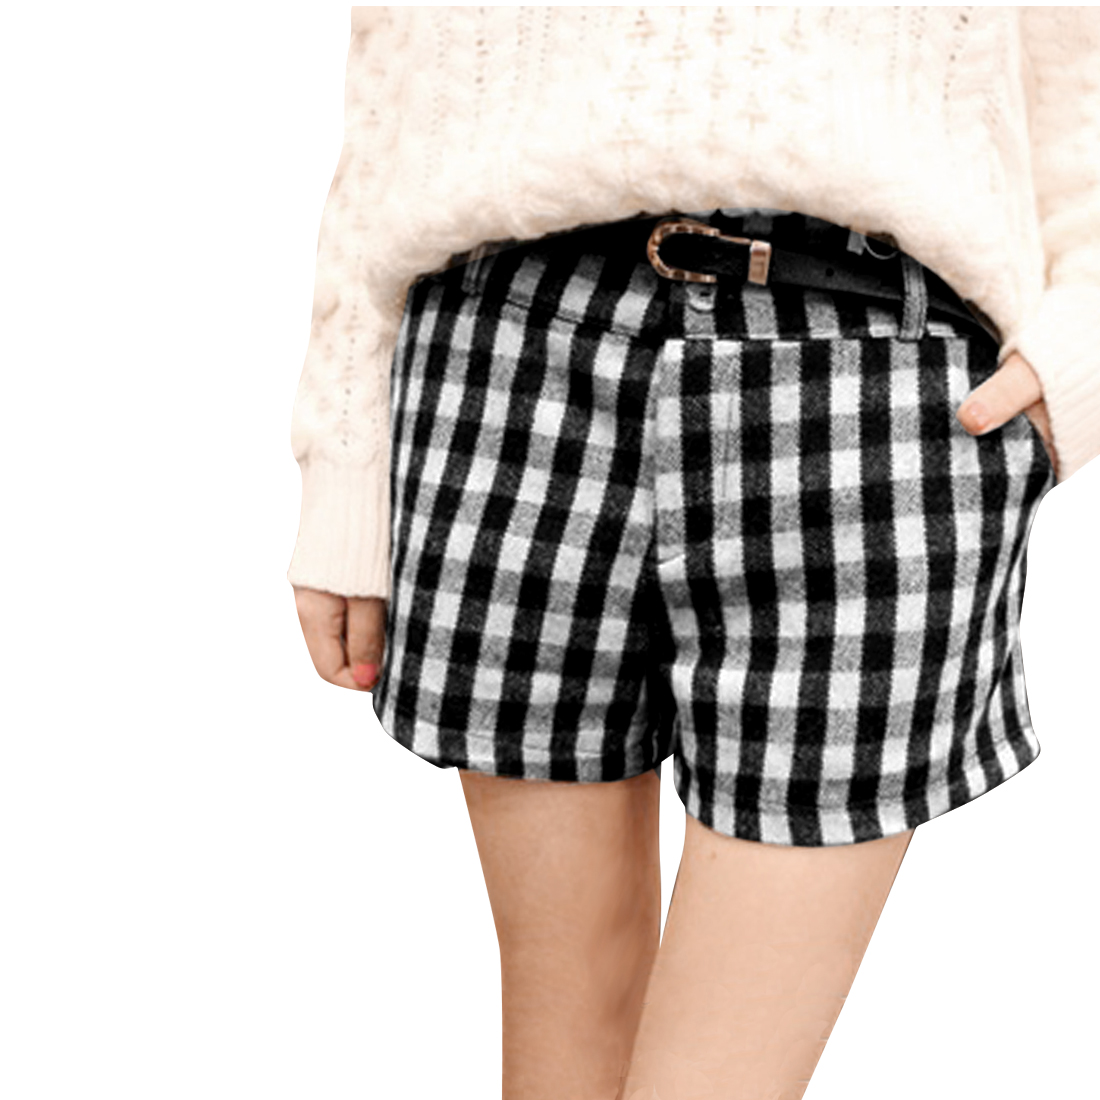 Lady Belt Loop Button Up Checked Pattern Black White Shorts w Belt S